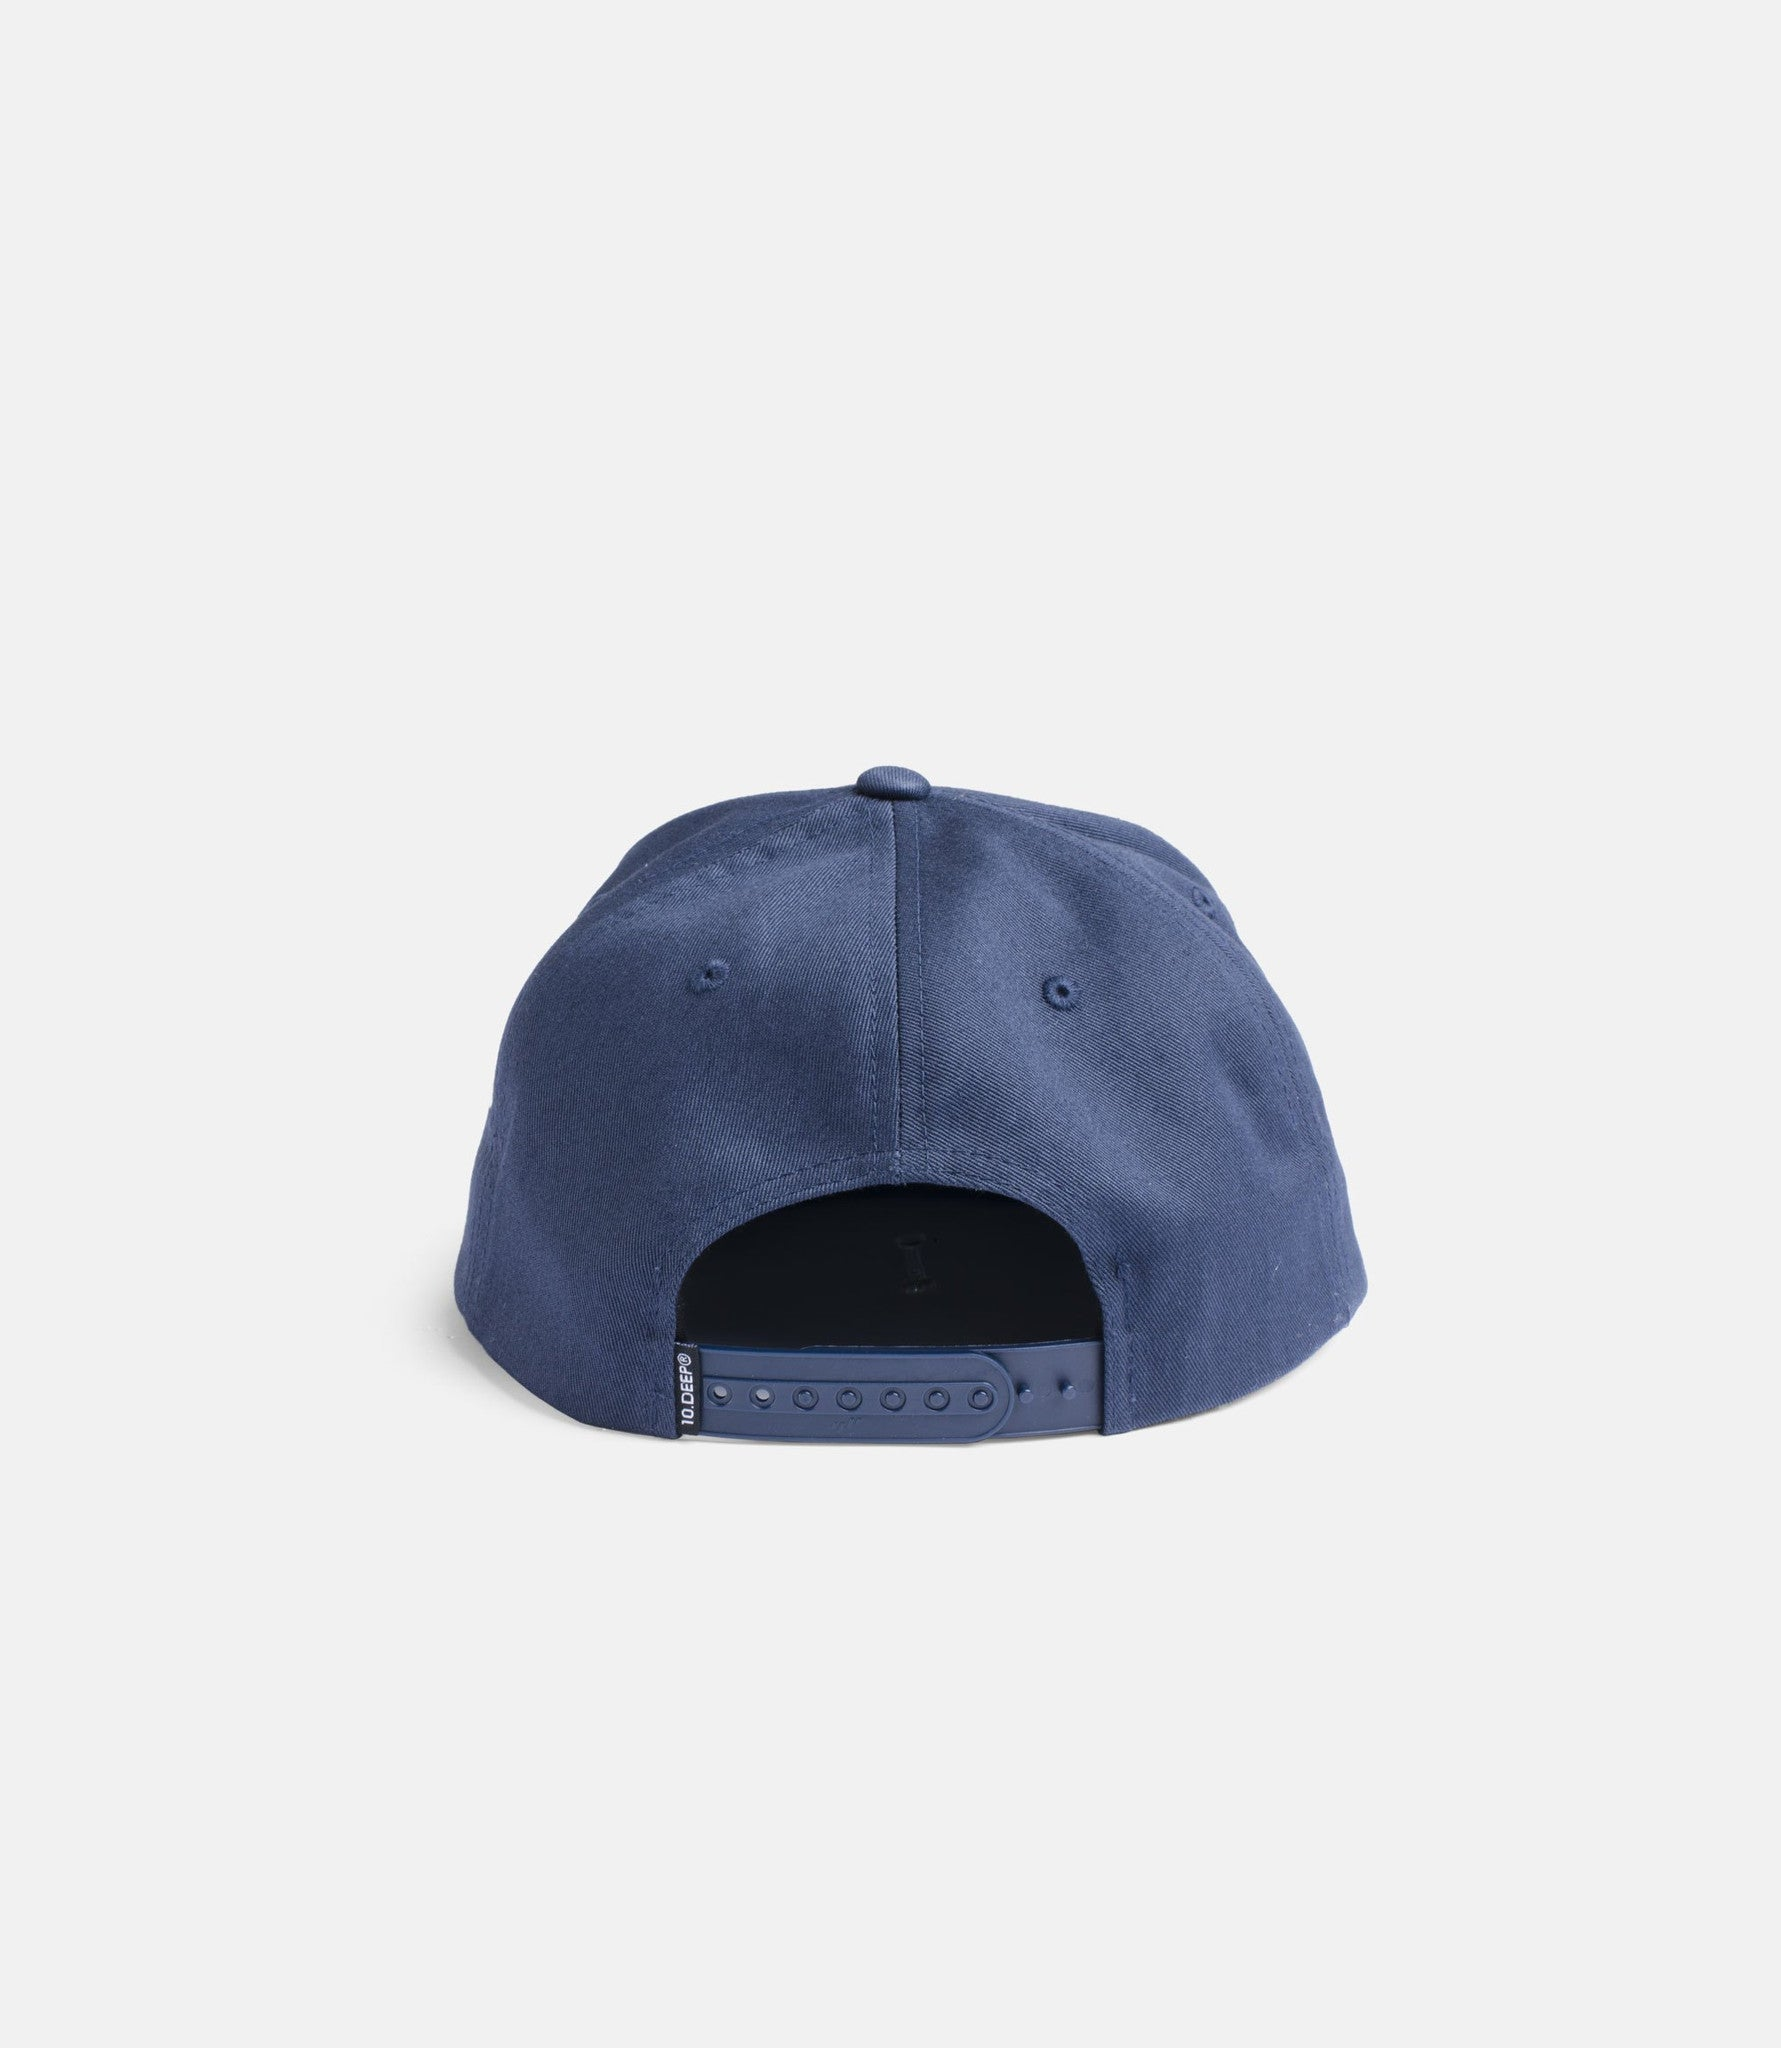 10Deep - Souvenir Snapback, Navy - The Giant Peach - 5